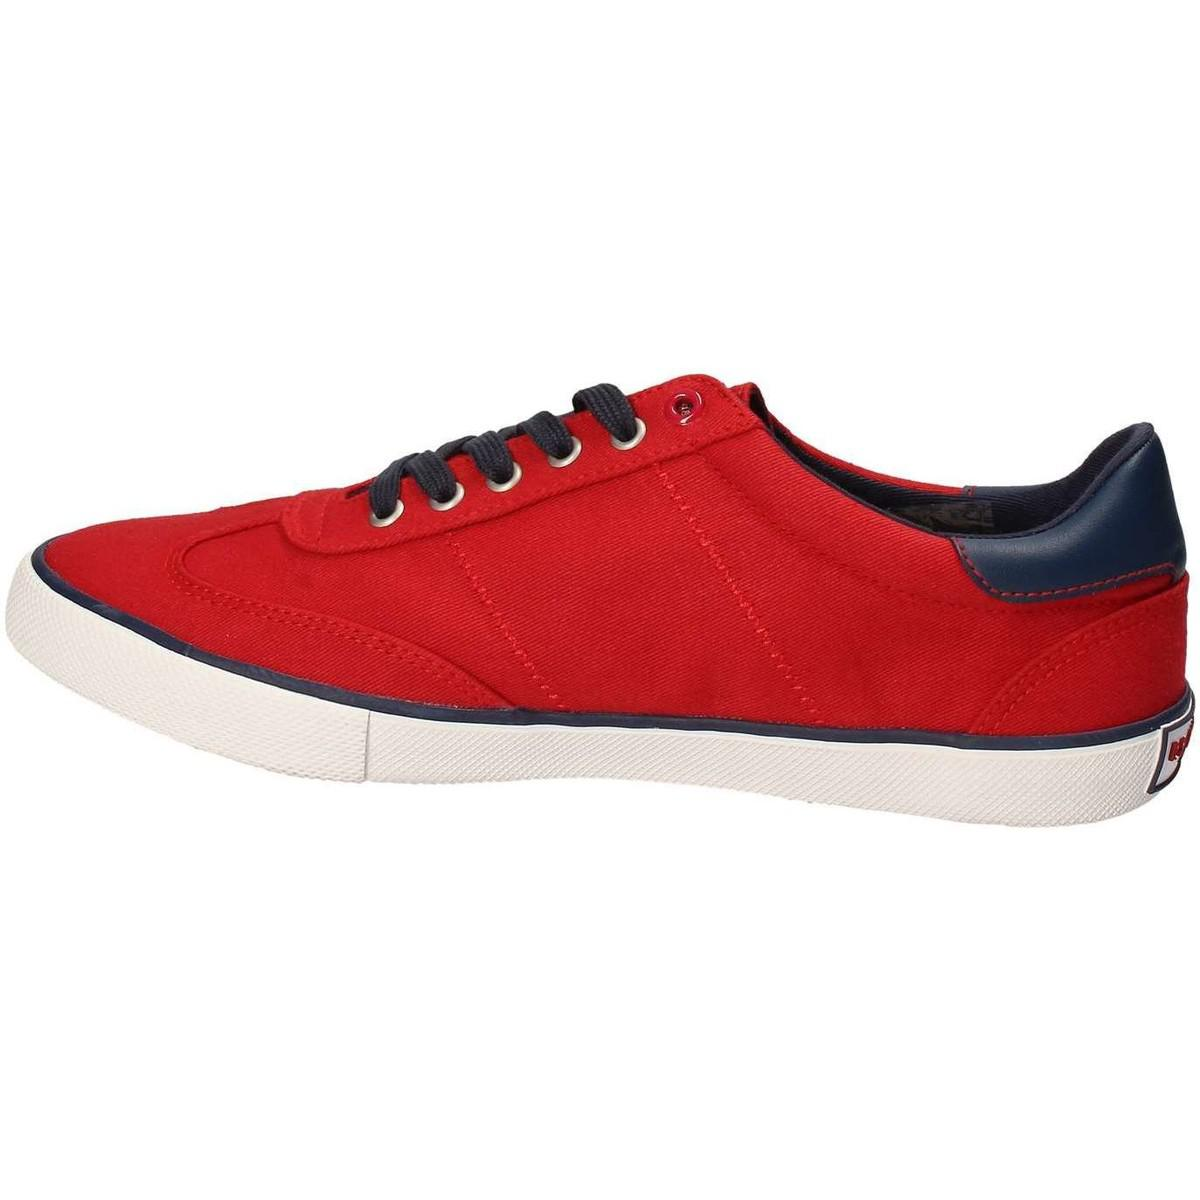 U.S. POLO ASSN. U.s. Polo Assn. Marcs4137s7/c1 Sneakers Man Red Men's Shoes (trainers) In Red for Men